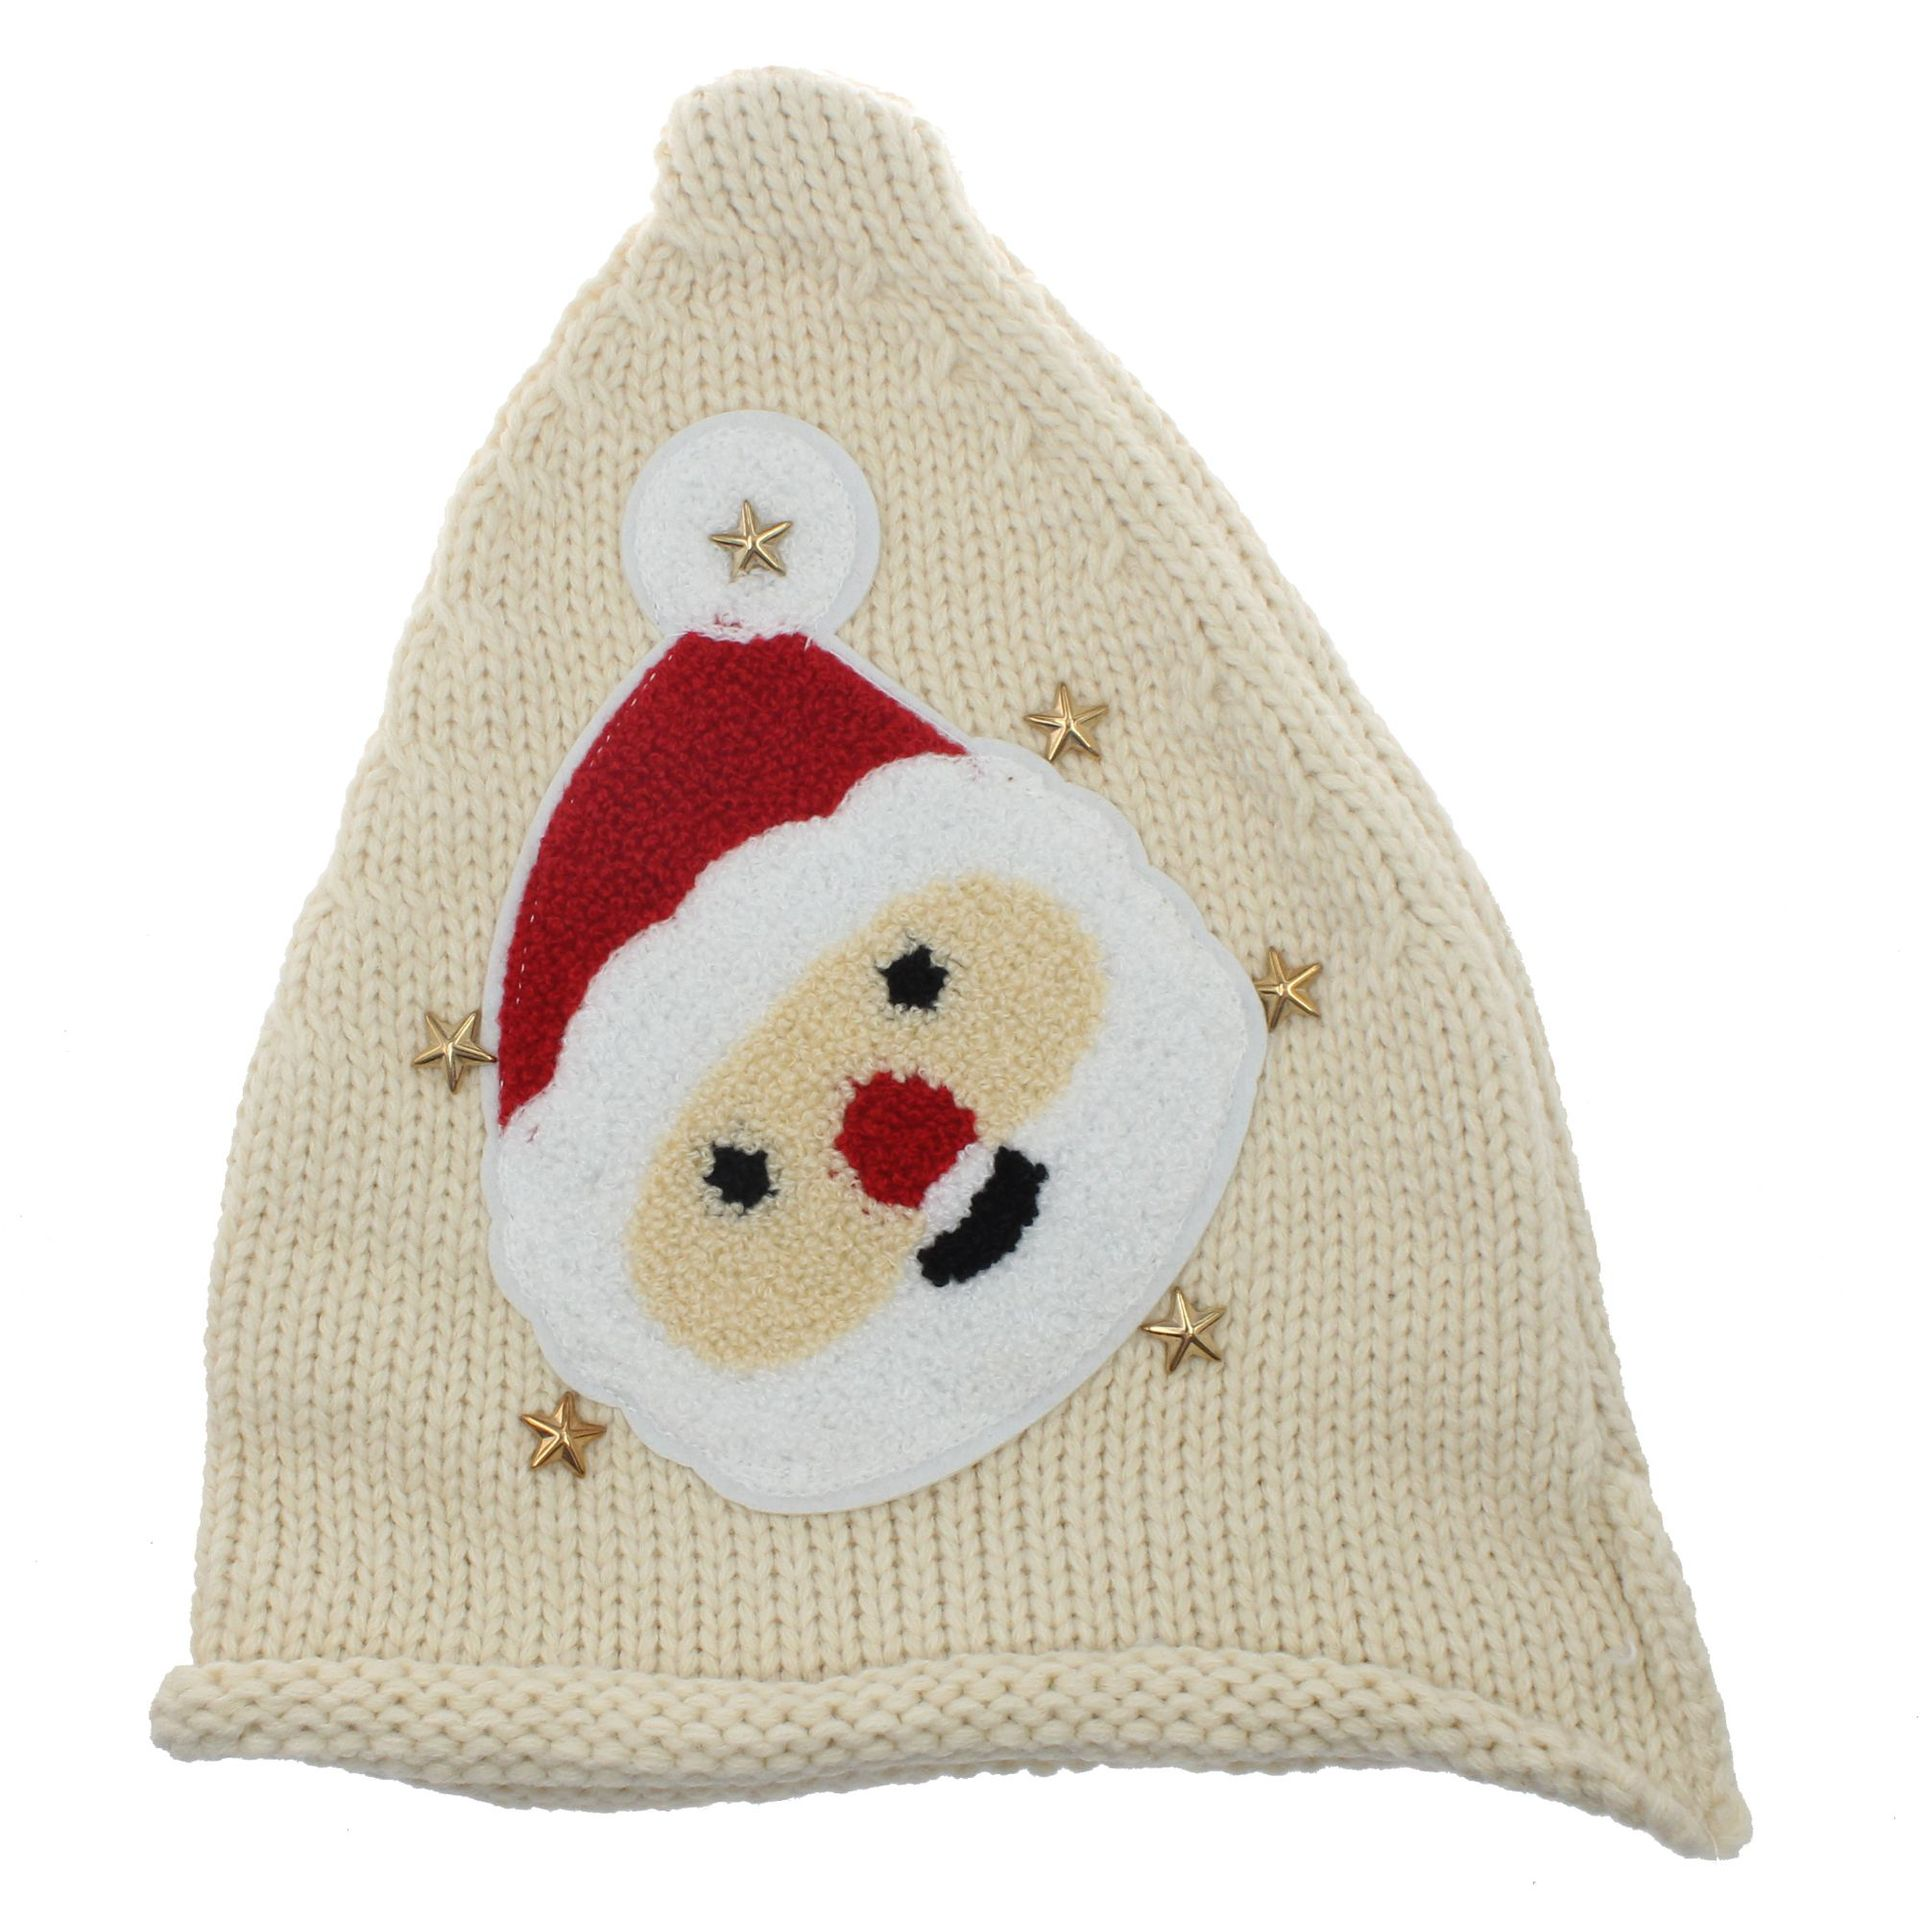 Kids Christmas Knitted Caps Baby Santa Claus Knitting Hats Infant Knitted Cap Kids Xmas Hat Winter Beanies Party Hats DH0125